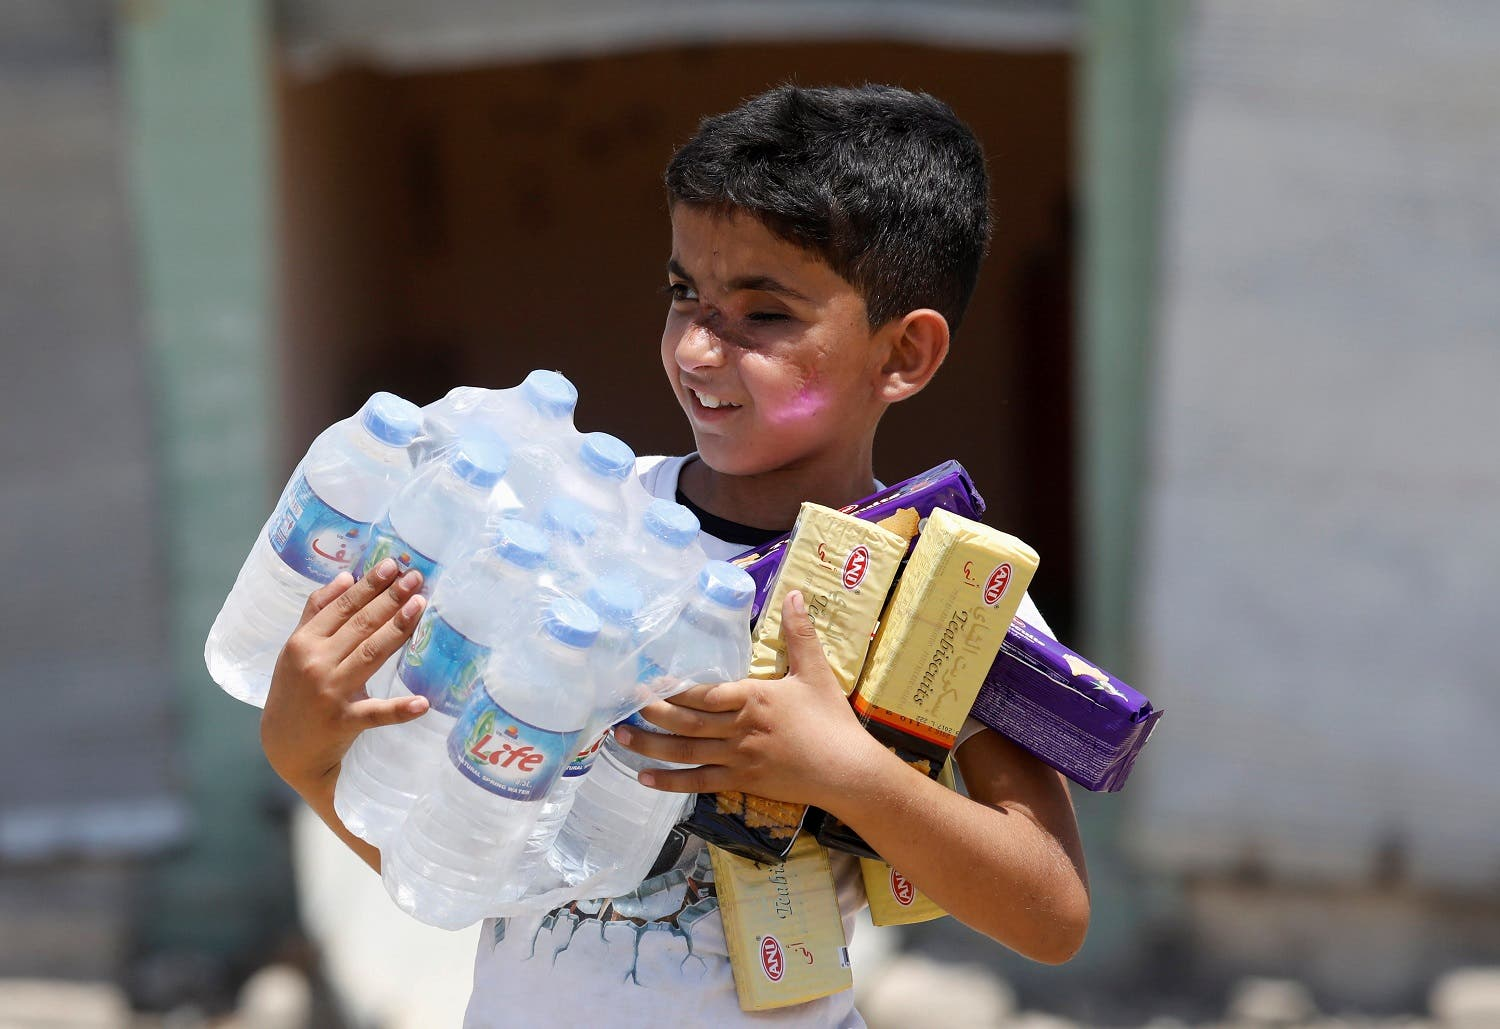 A boy carries bottles of water and biscuits given by an aid organization during the first day of Eid-al Fitr celebration in West Mosul, Iraq June 25, 2017. (Reuters)